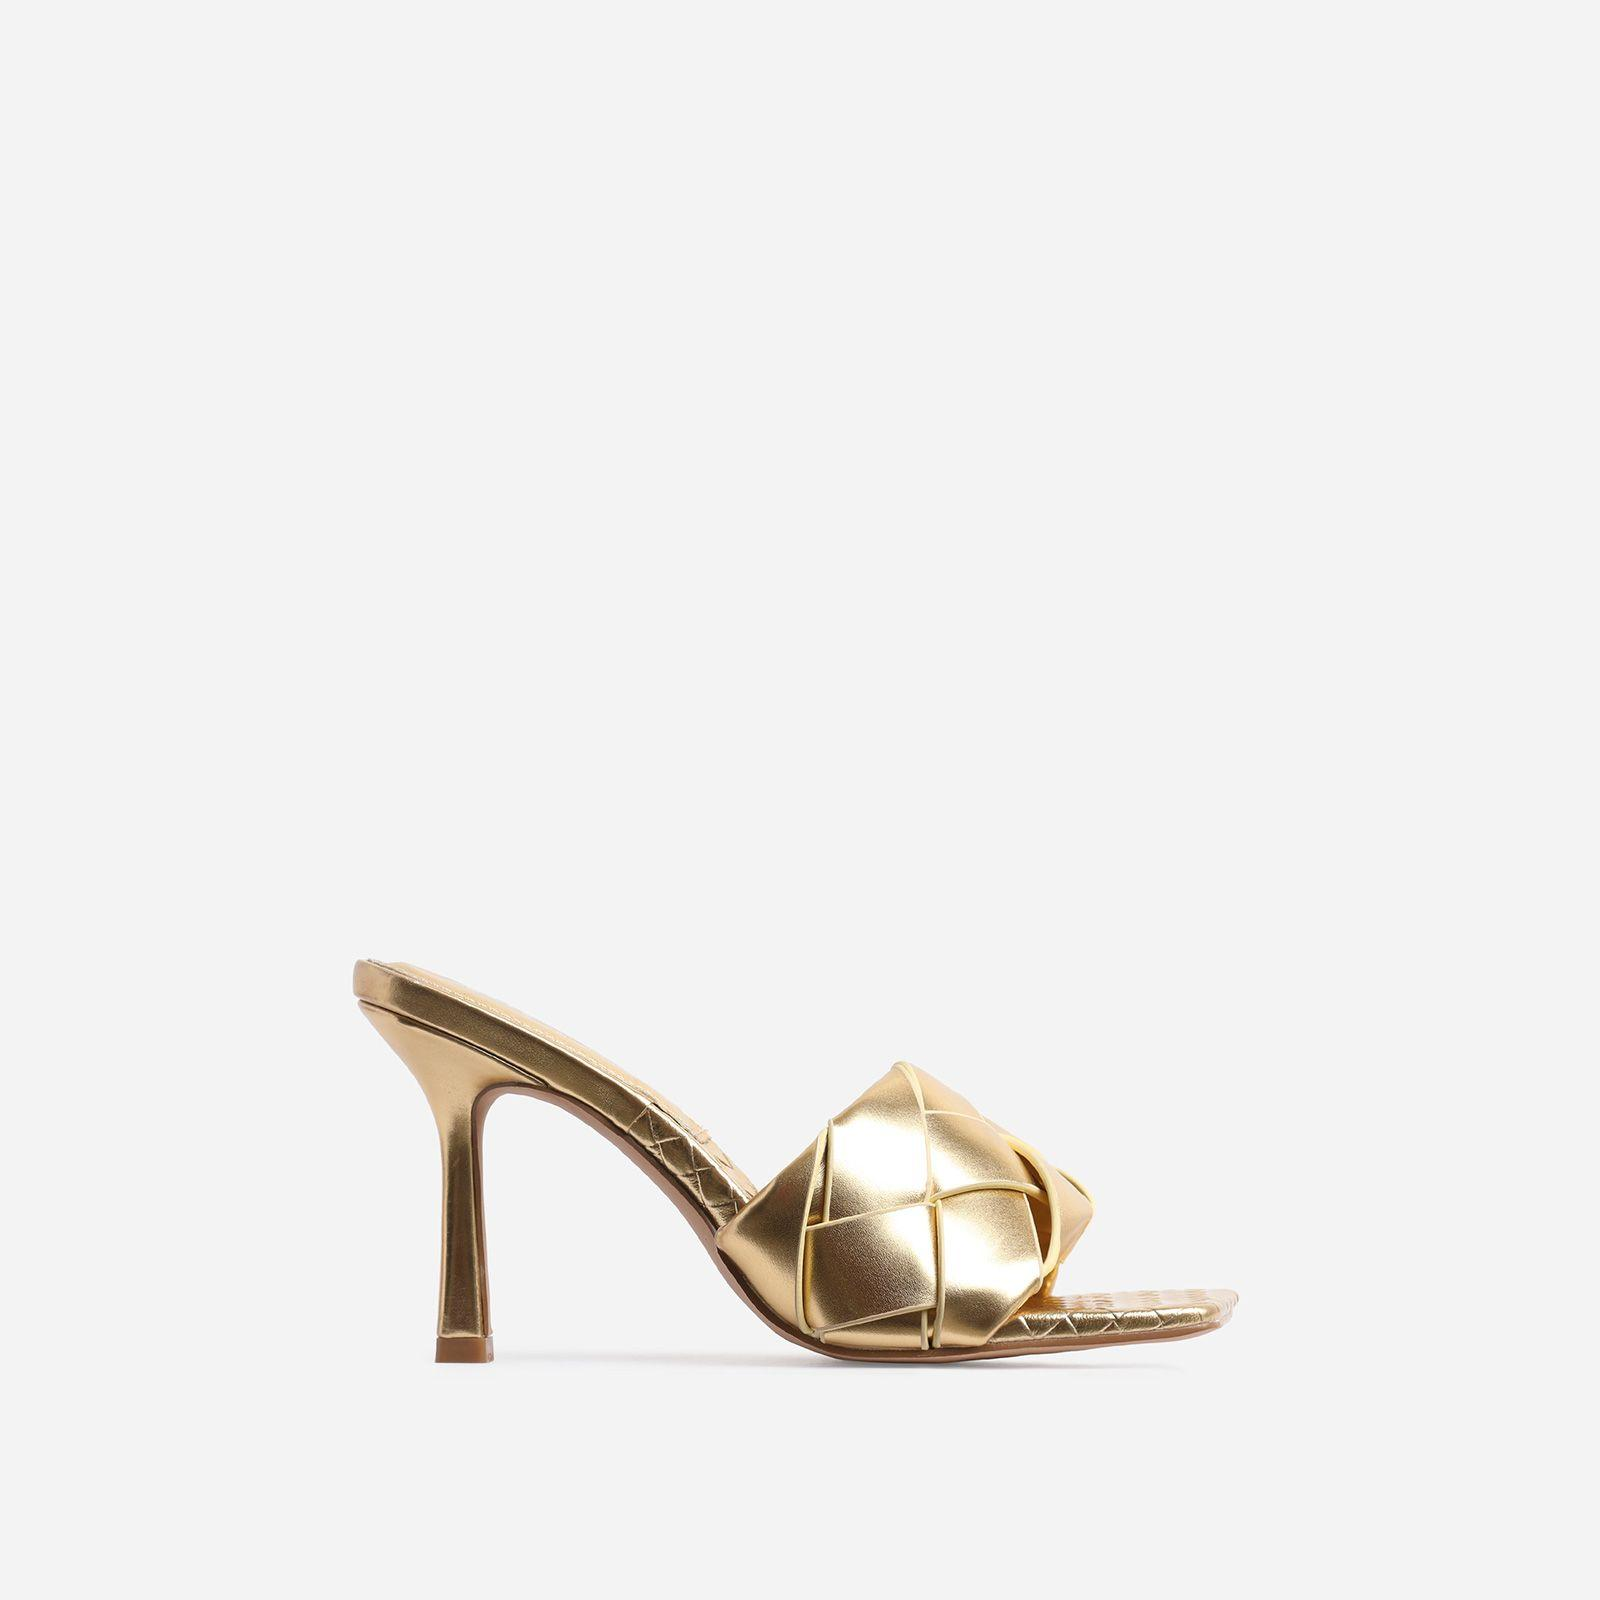 Turntup Woven Square Peep Toe Mule In